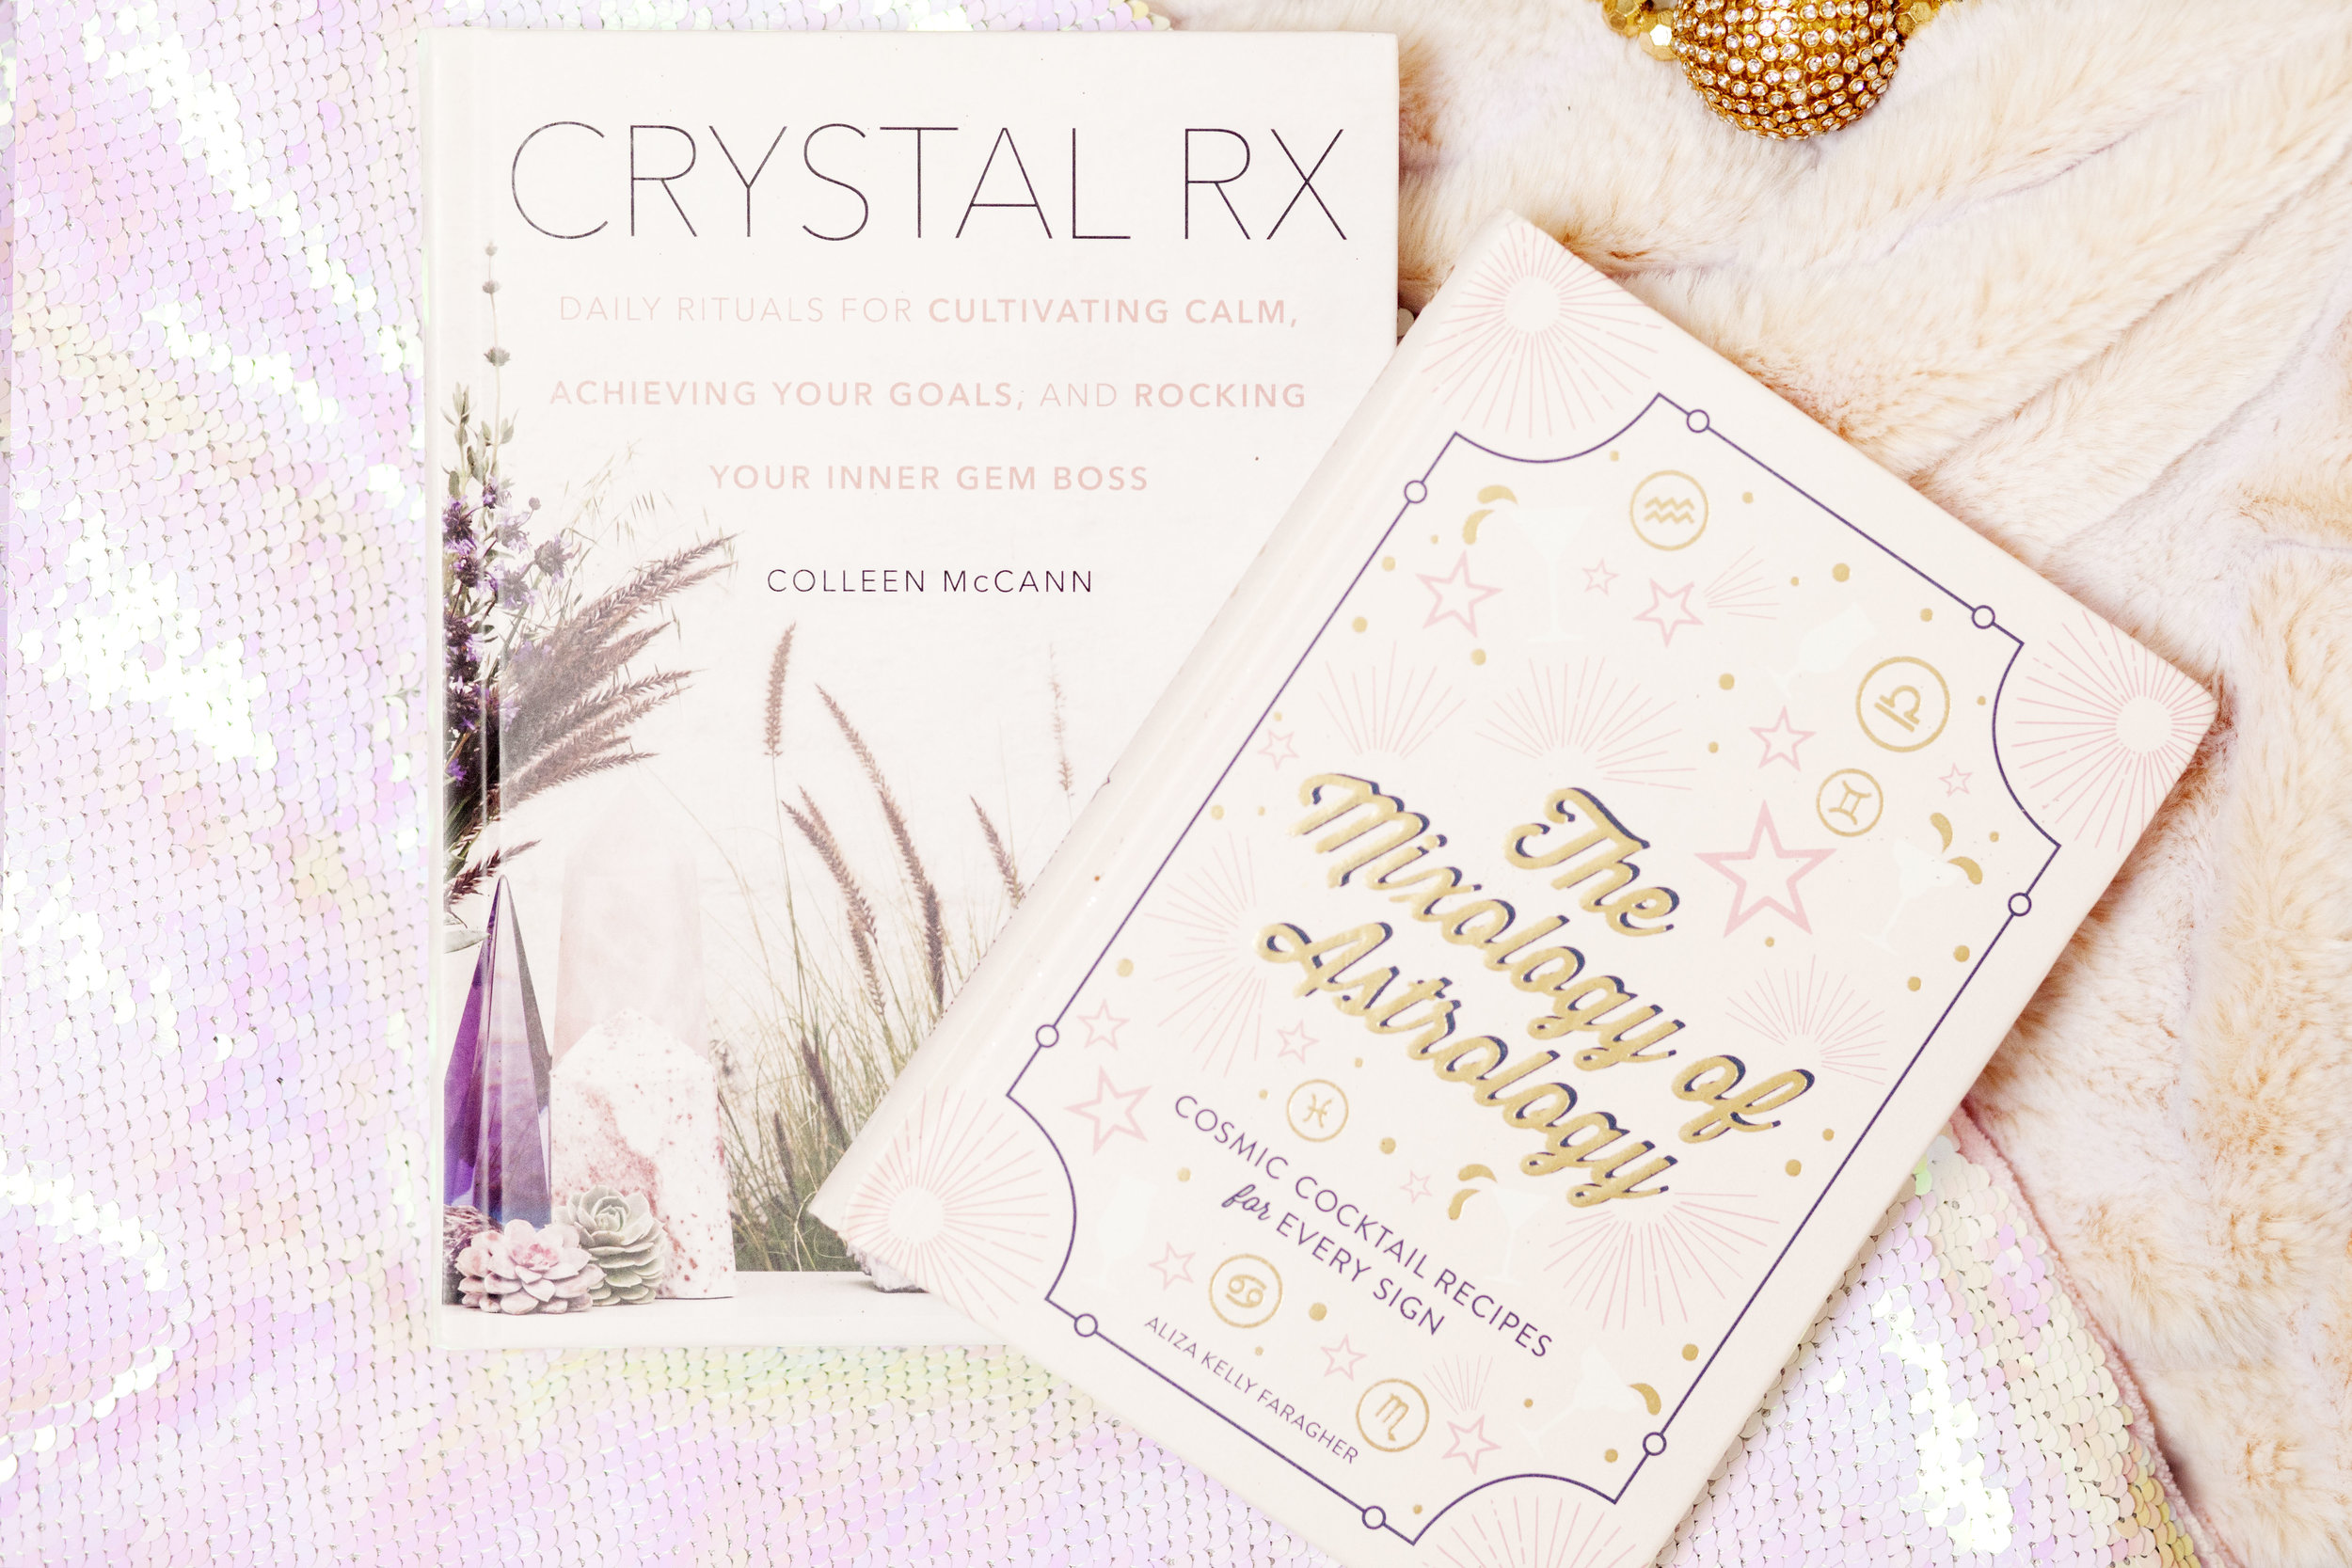 Crystal Rx - The Mixology of Astrology - The Gilded Bellini